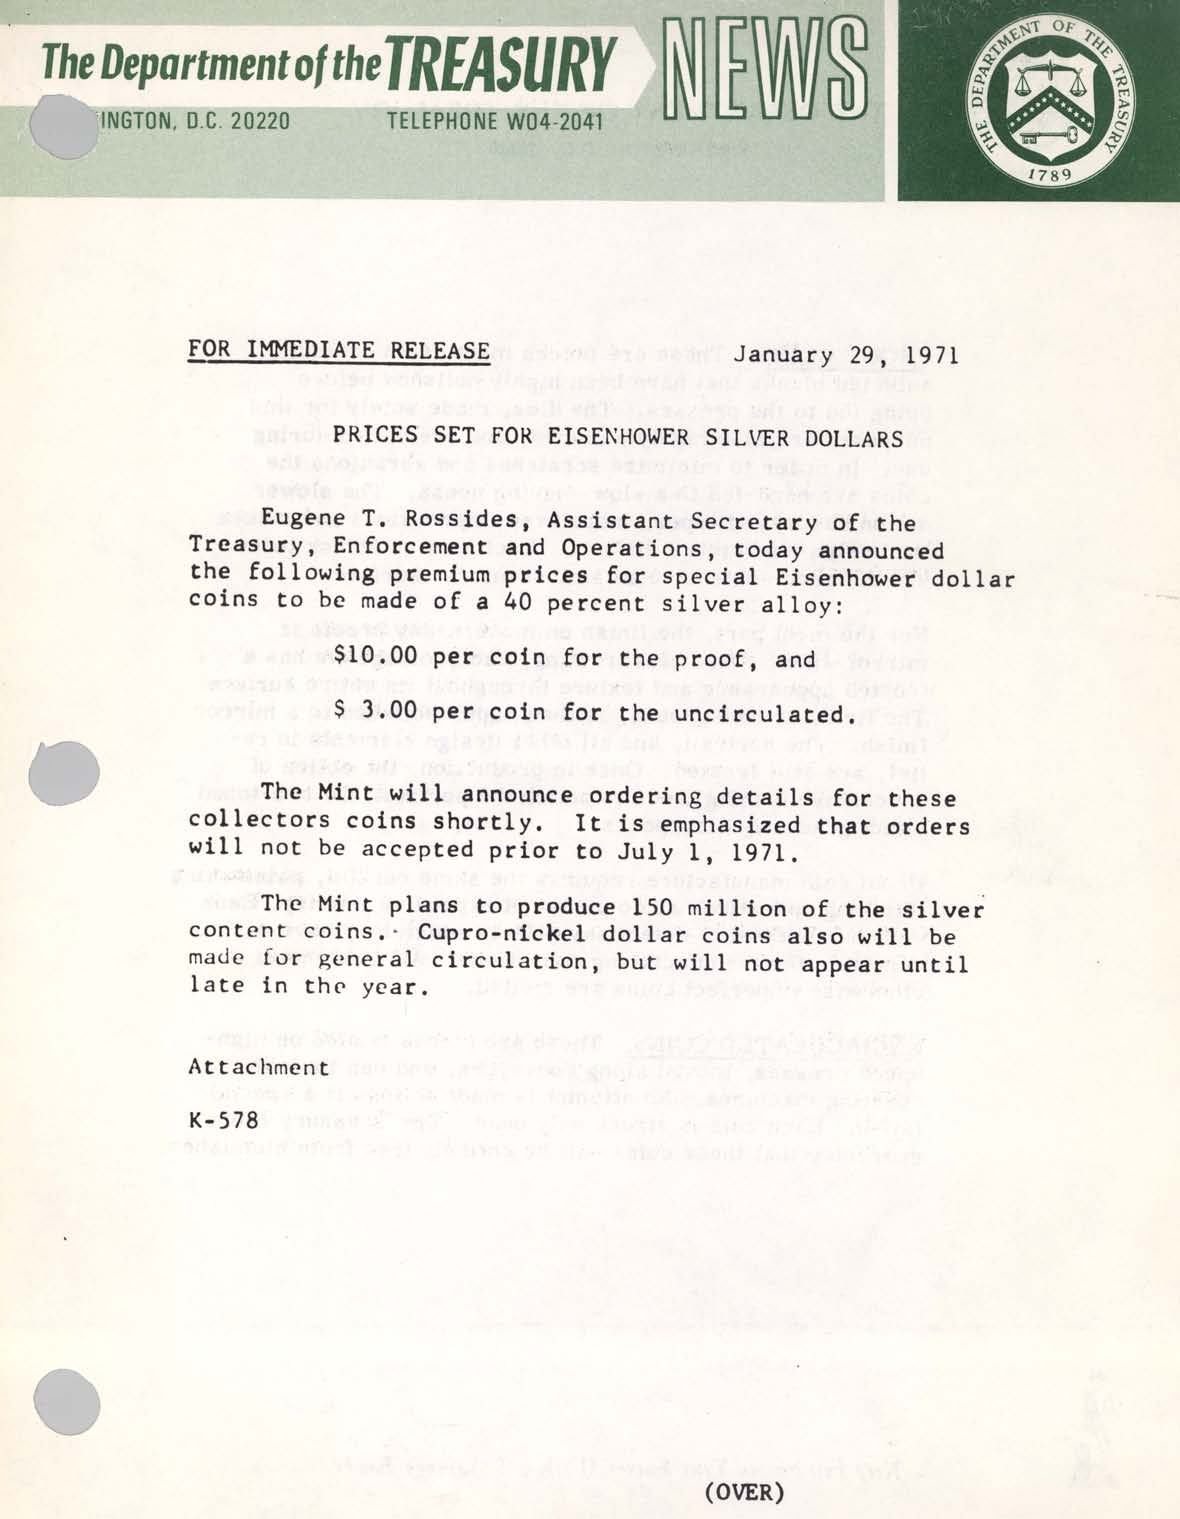 Historic Press Release: Prices Set Eisenhower Dollar, Page 1